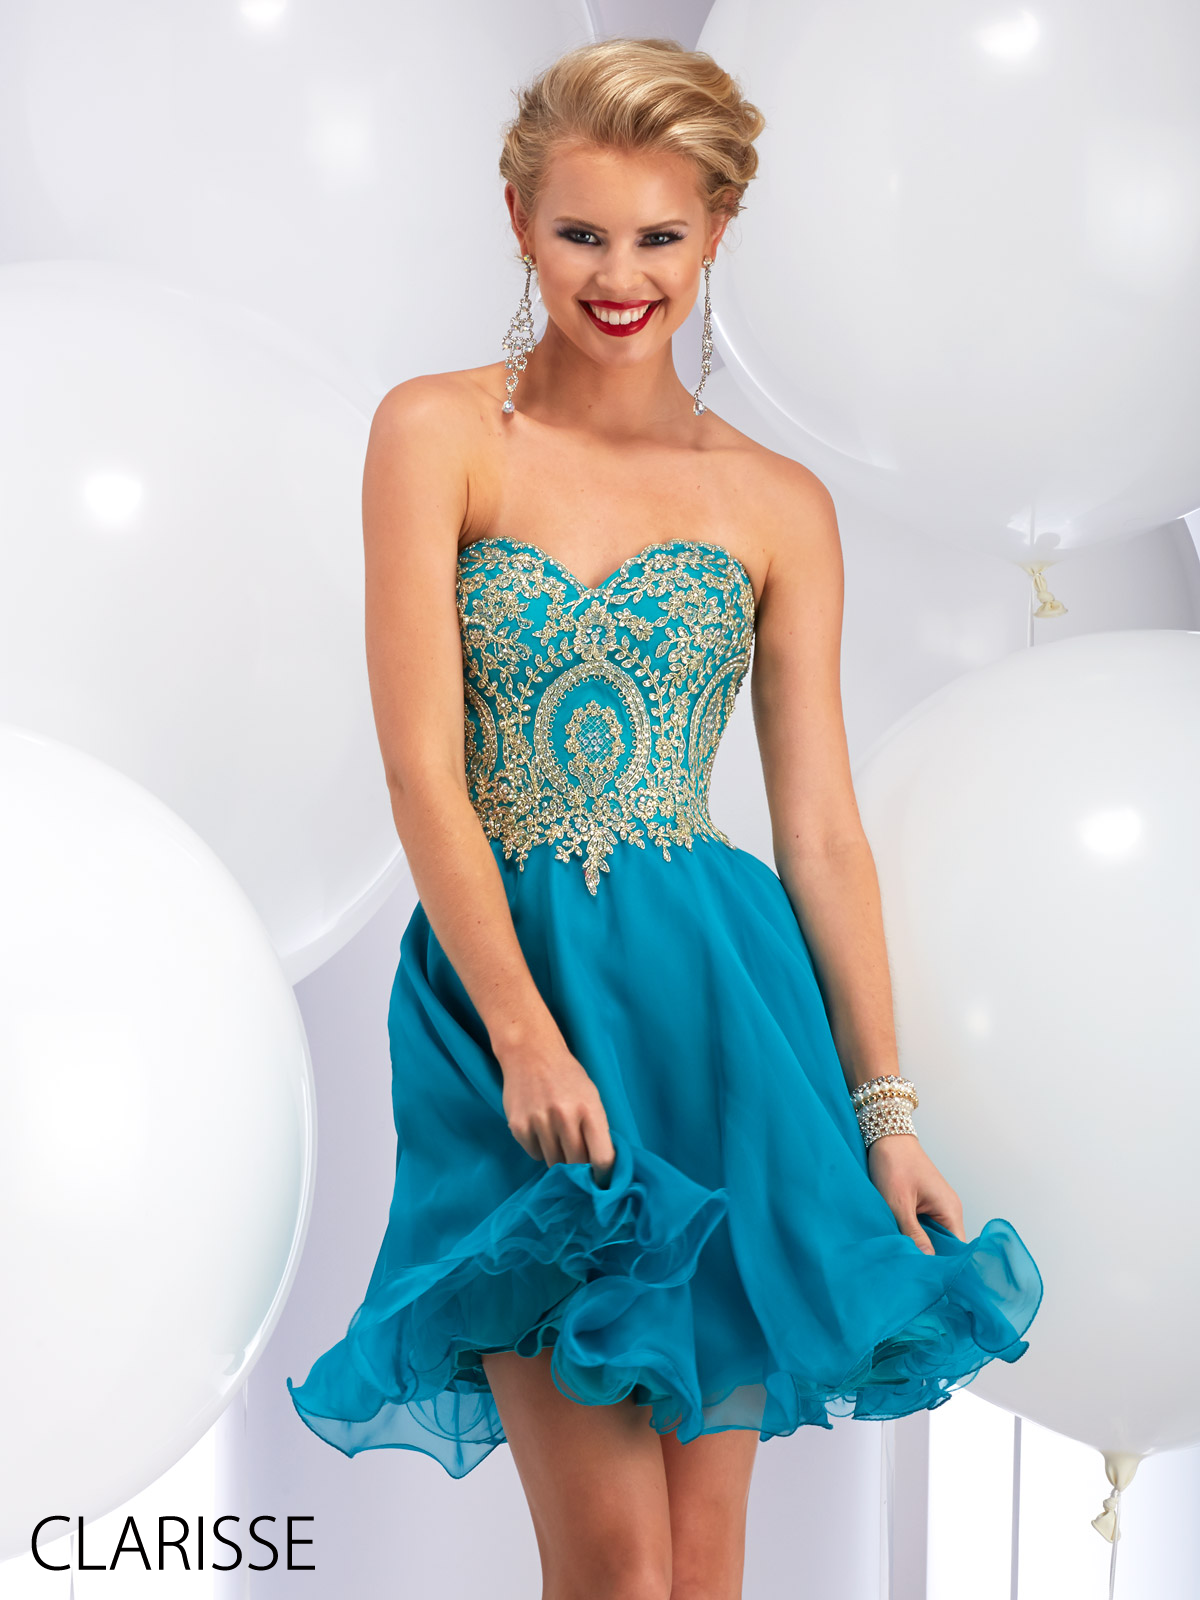 Clarisse Short, Teal, Fun and Flirty Beaded 2016 Prom Dress Style ...